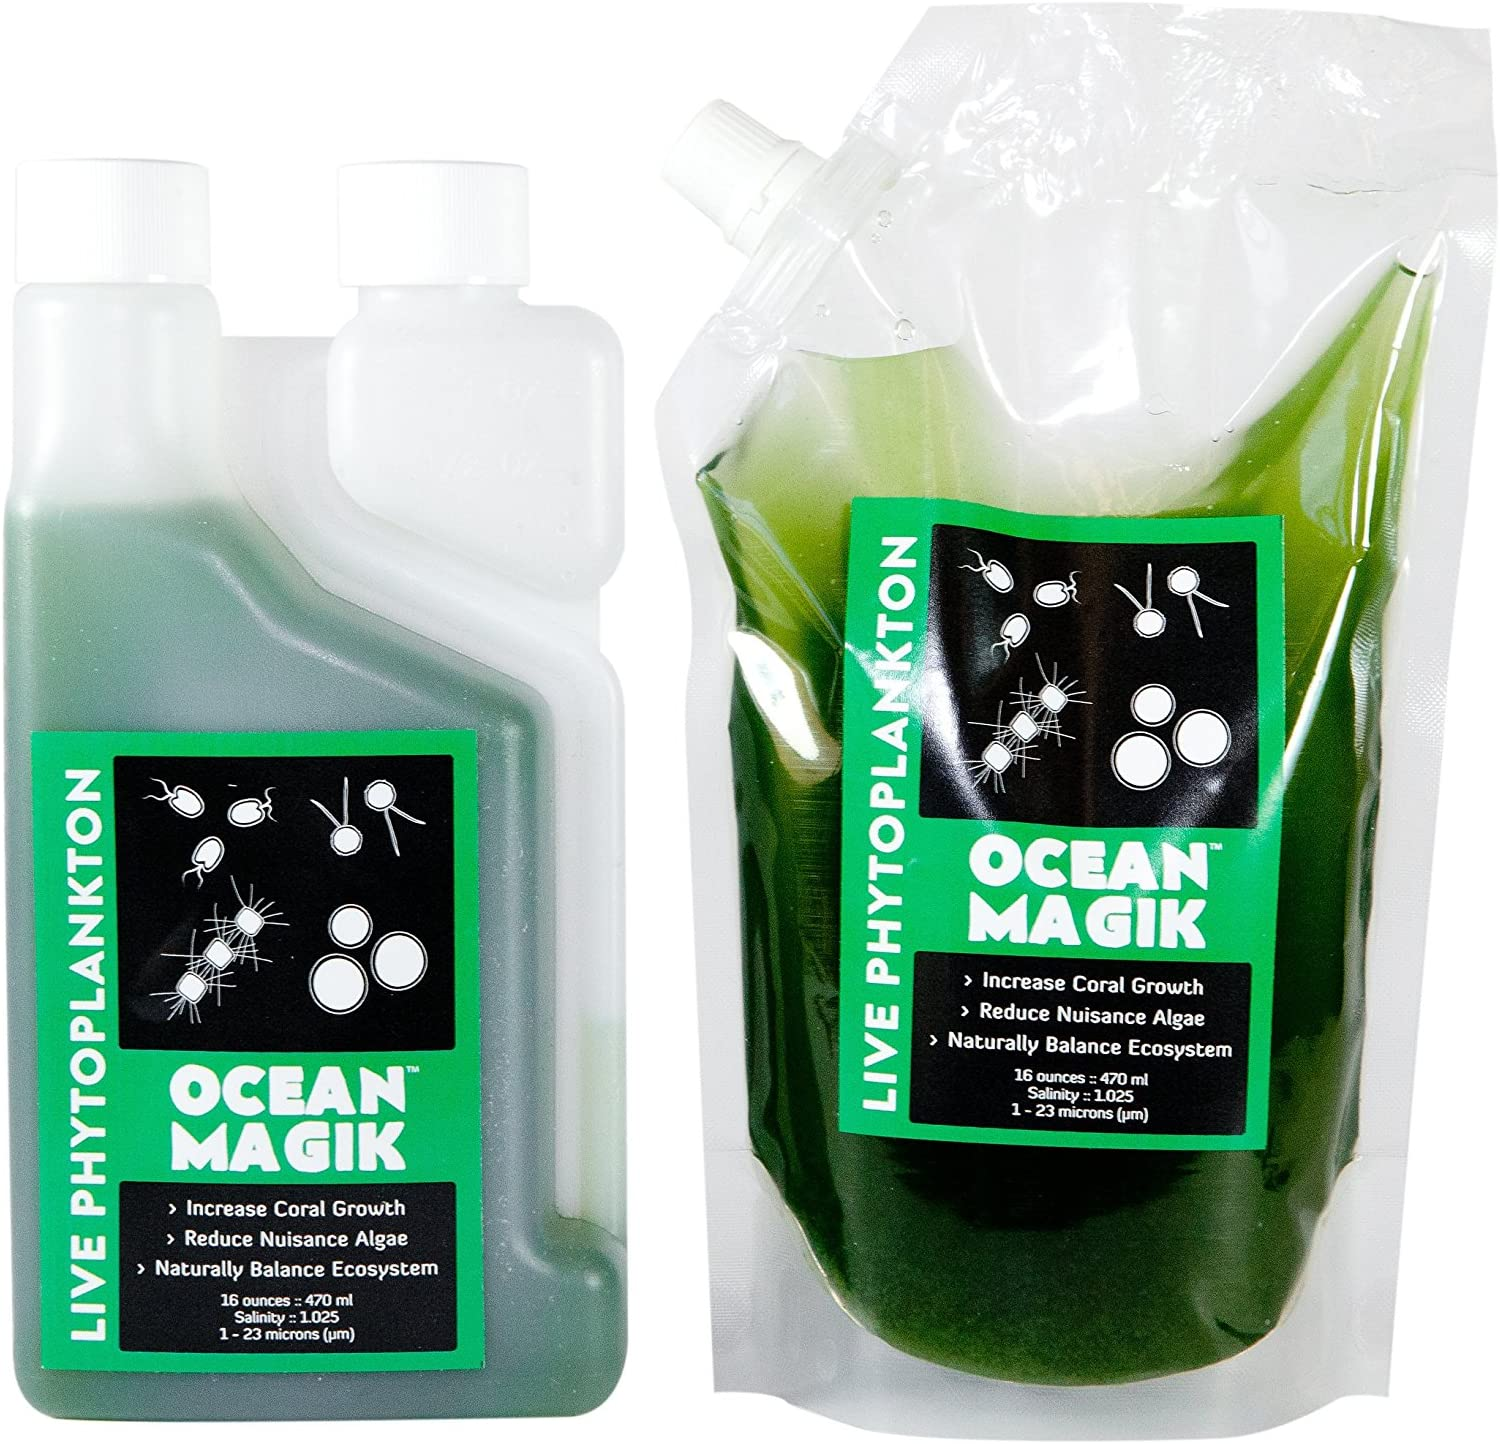 OceanMagik Live Phytoplankton Blend - Tetra x Nanno x Iso x Thal Phyto Coral, Reef, Fish & Copepod Food